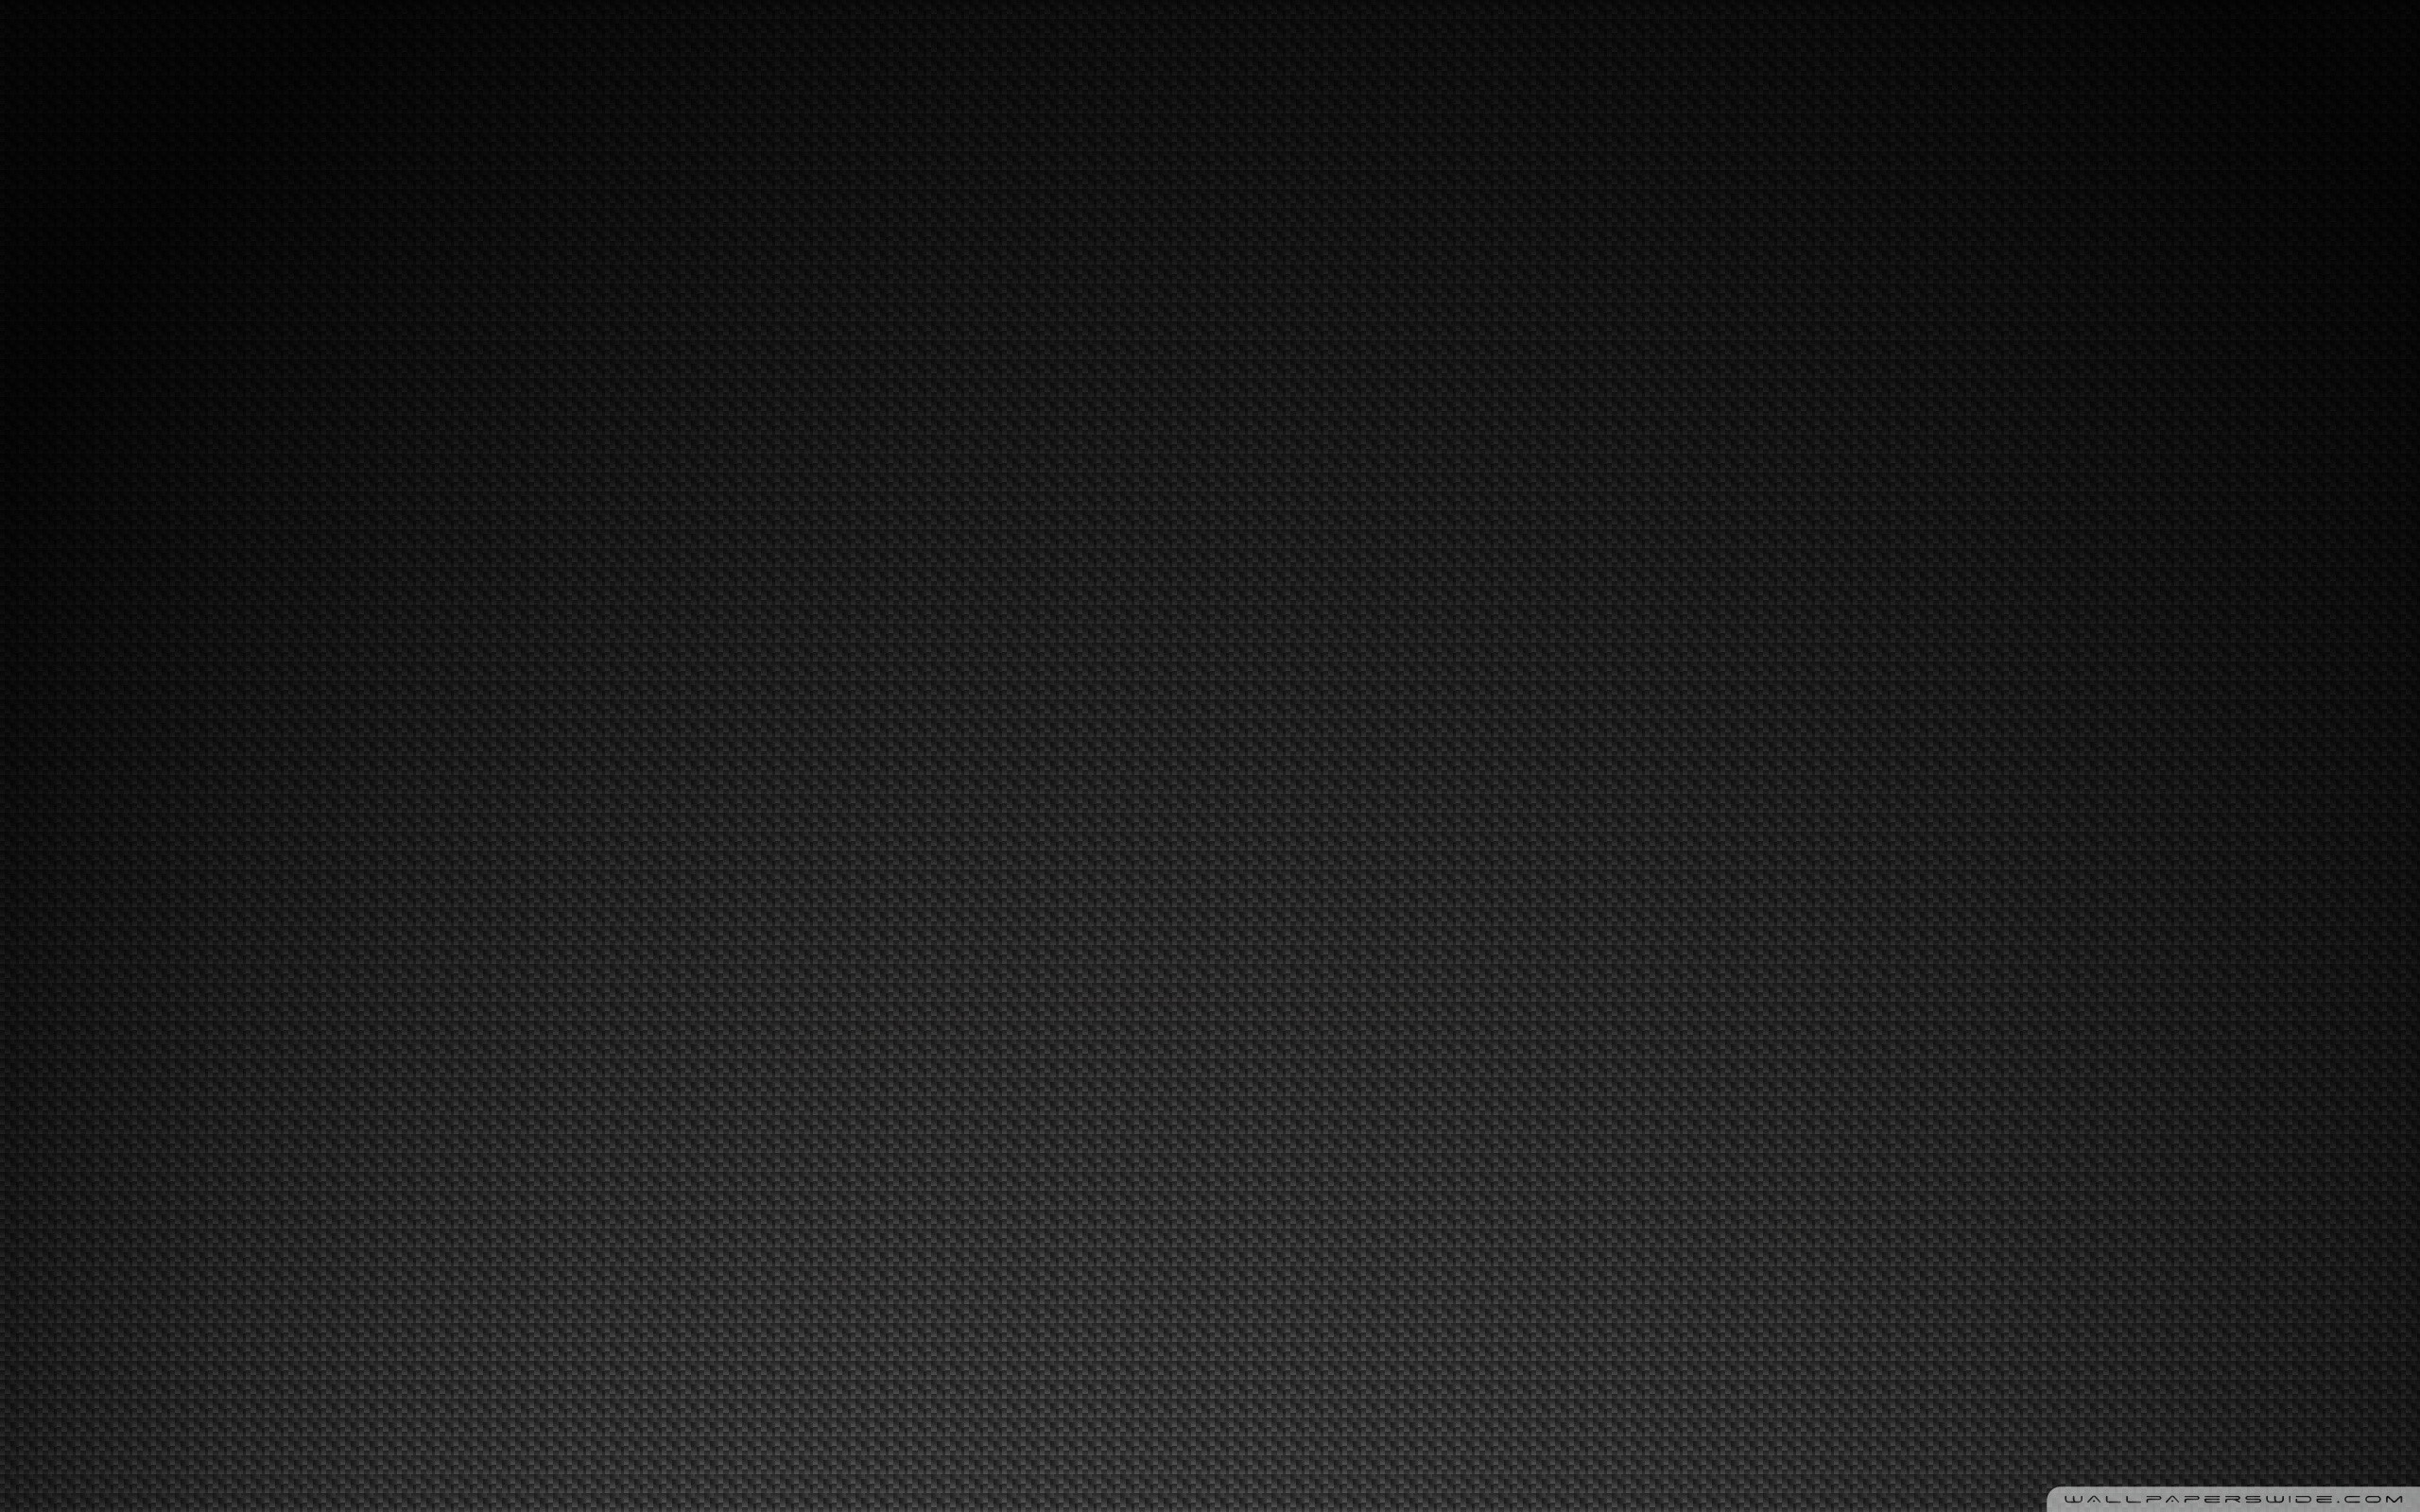 Carbon Fiber Background 183 ① Download Free Hd Wallpapers For